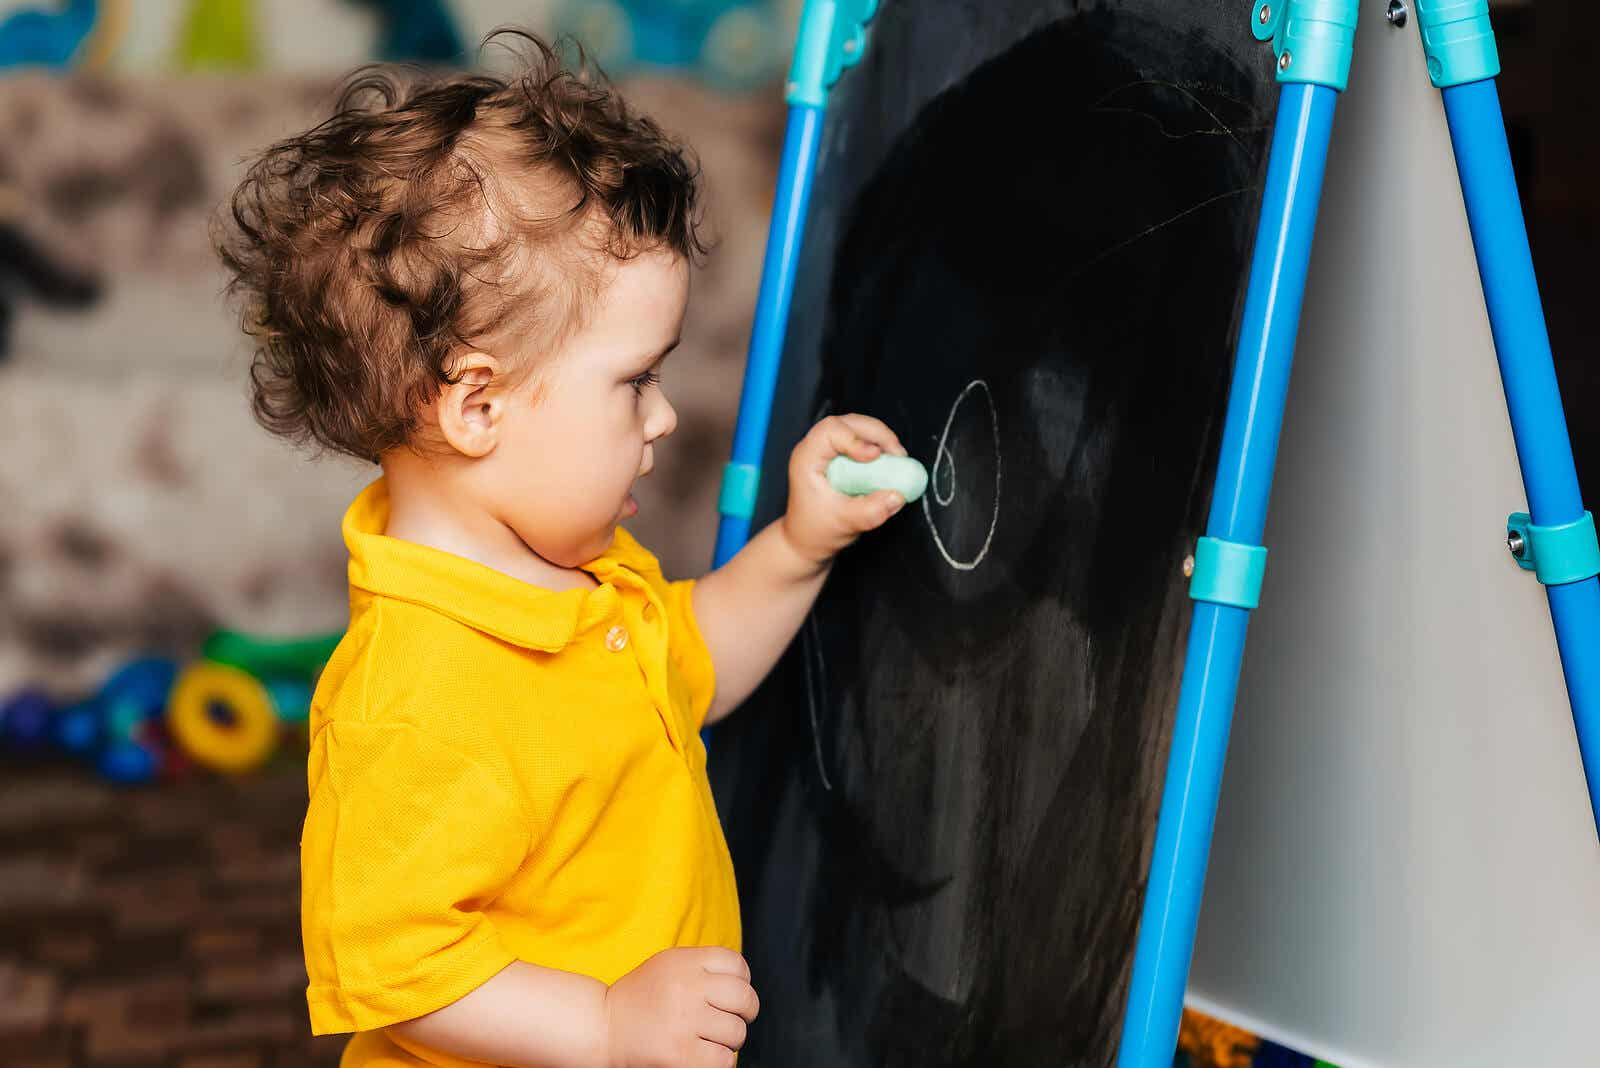 A toddler scribbling on a chalkboard.